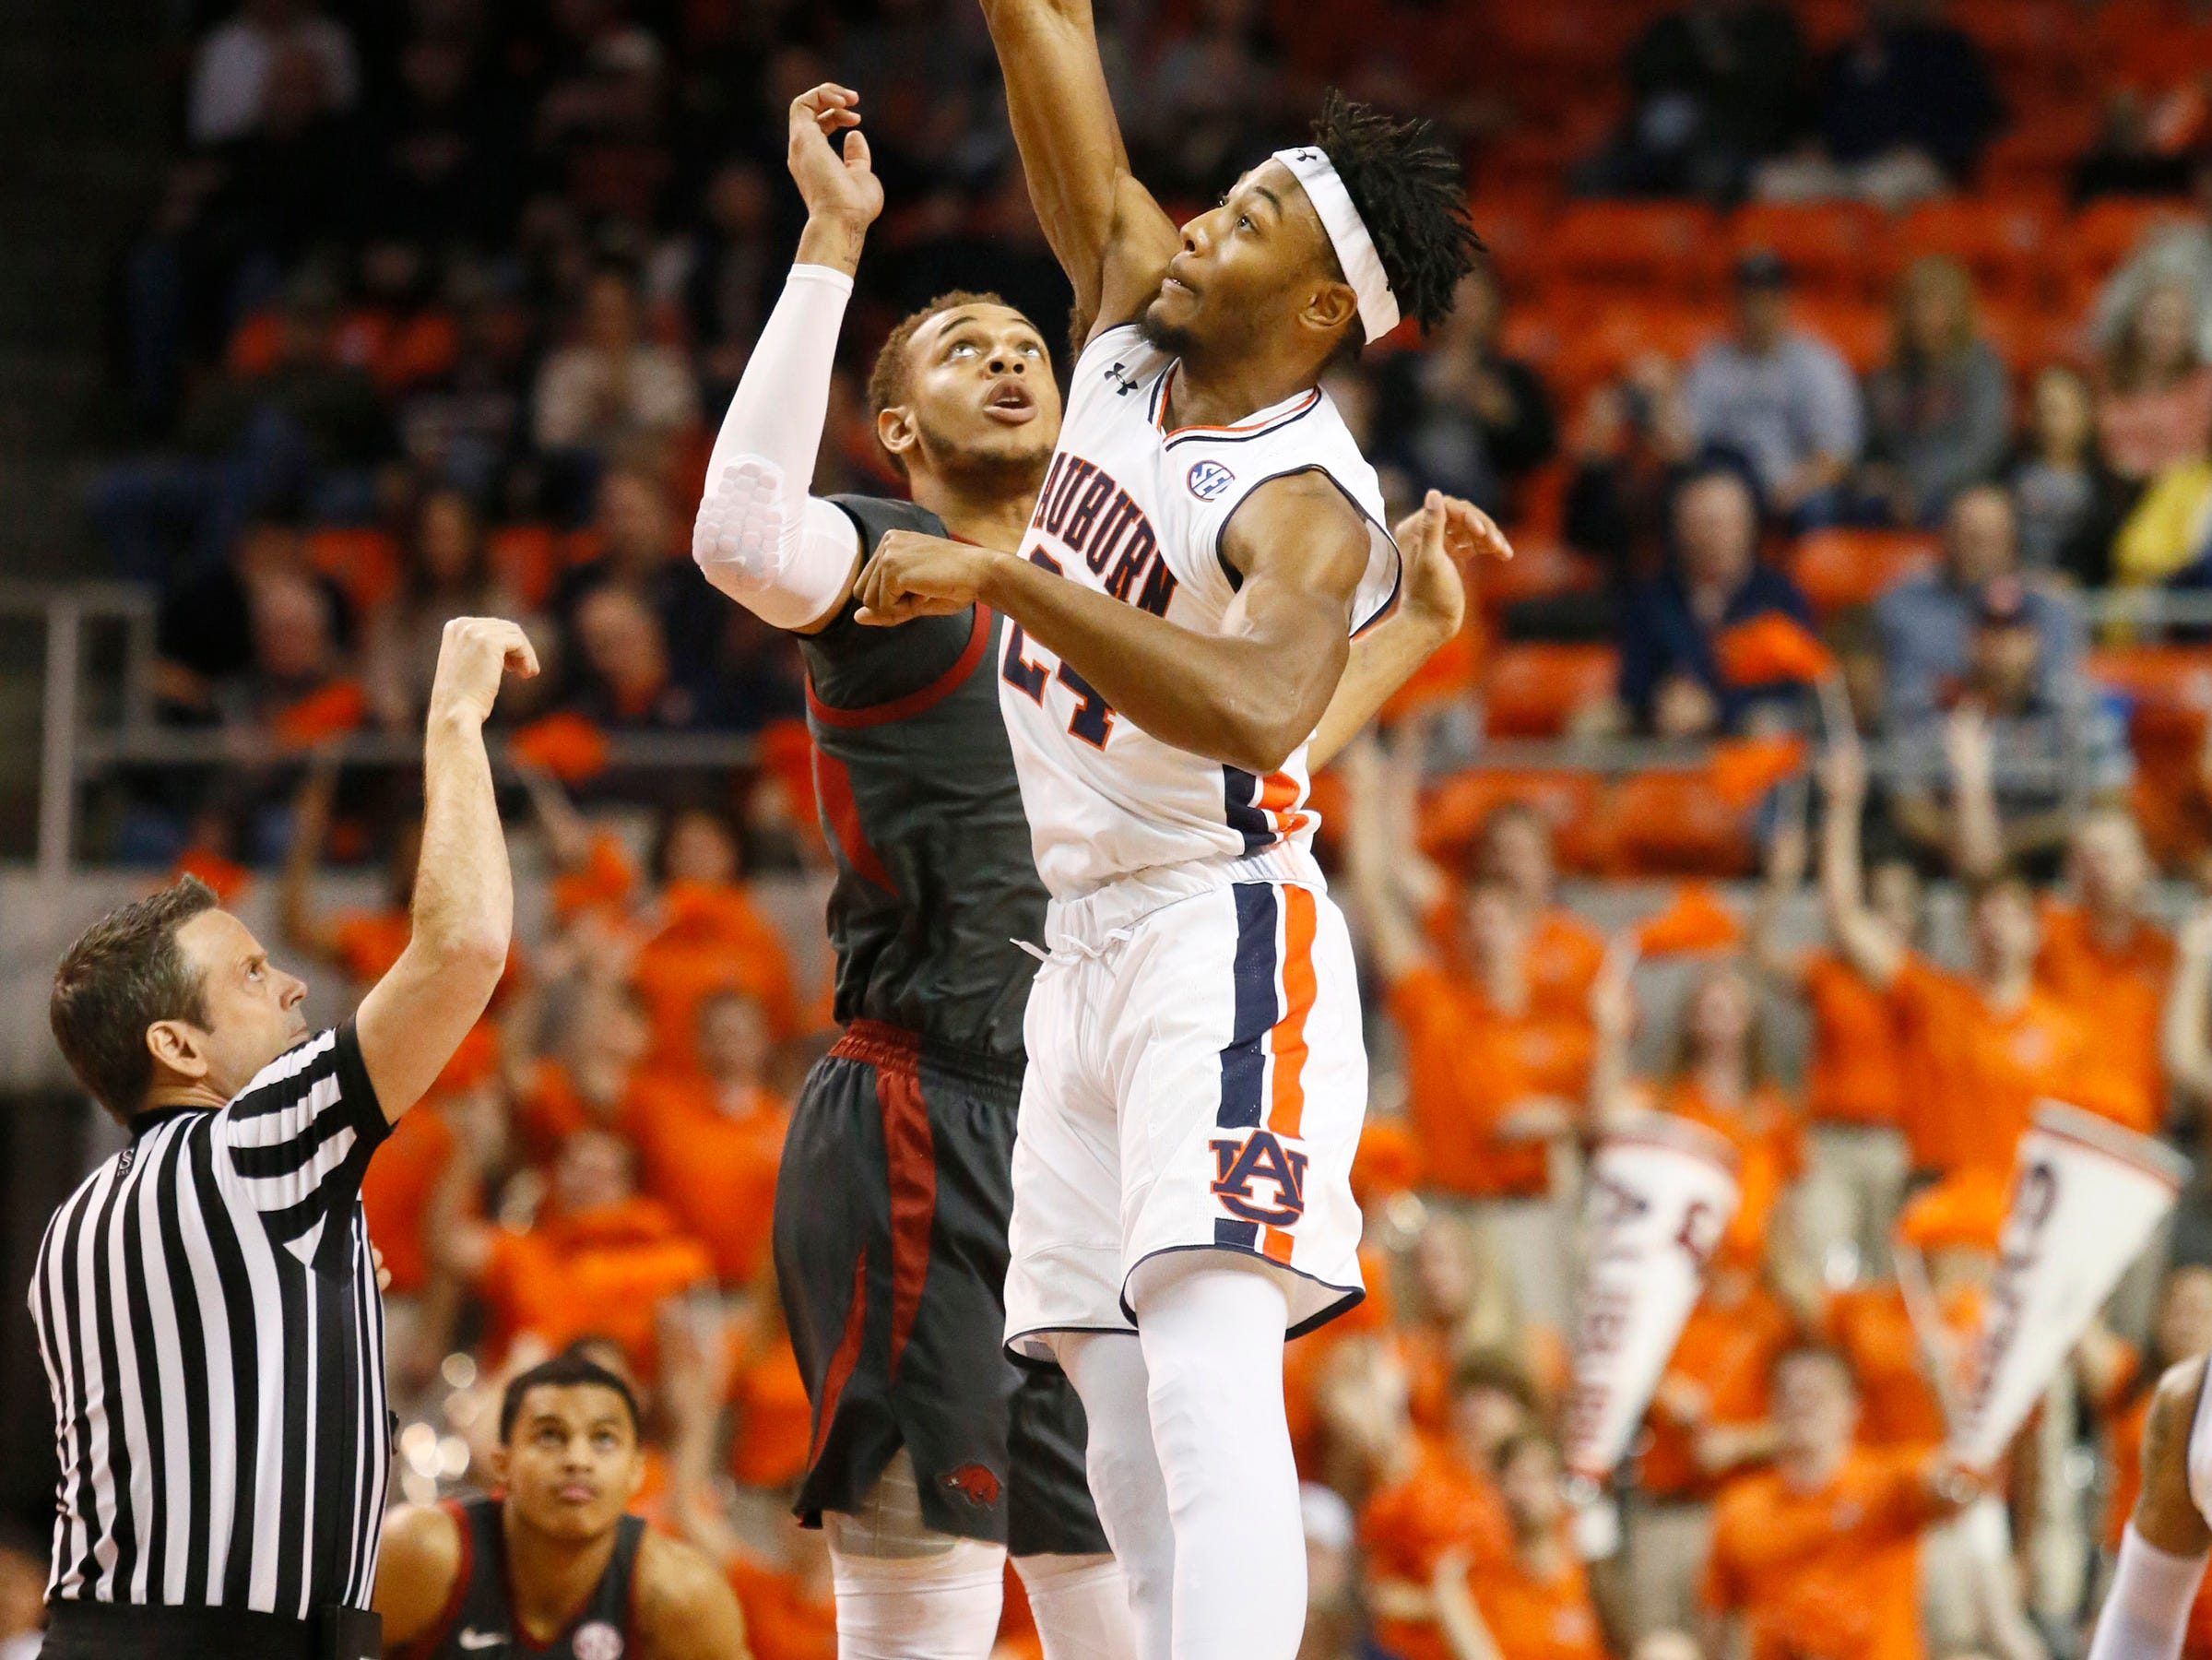 Feb 20, 2019; Auburn, AL, USA; Arkansas Razorbacks forward Daniel Gafford (10) is out jumped by Auburn Tigers forward Anfernee McLemore (24) for the opening tip at Auburn Arena. Mandatory Credit: John Reed-USA TODAY Sports